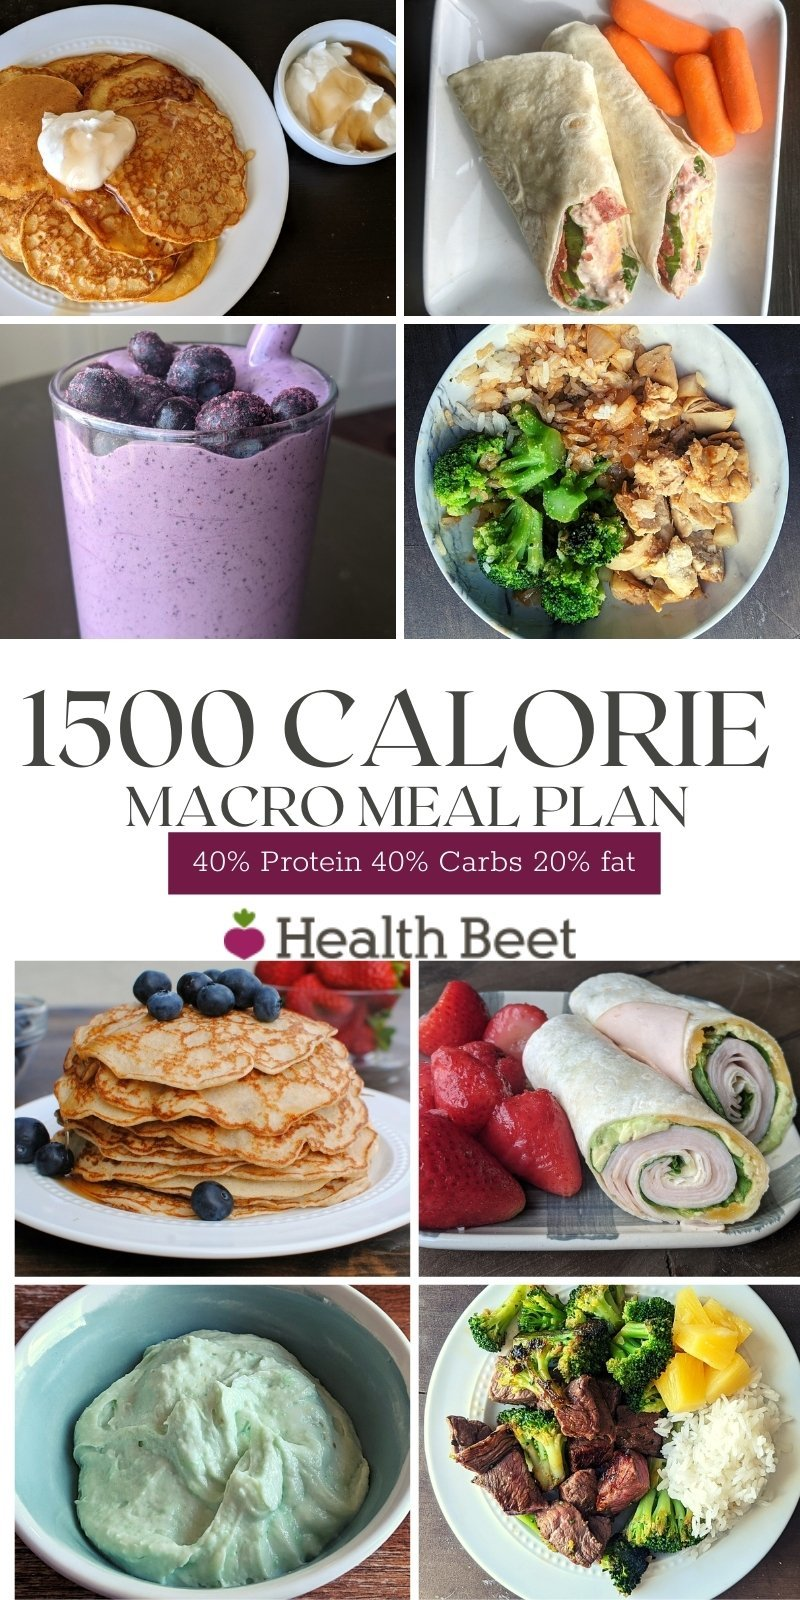 1500 calorie macro meal plan with free printable for shopping list and recipes